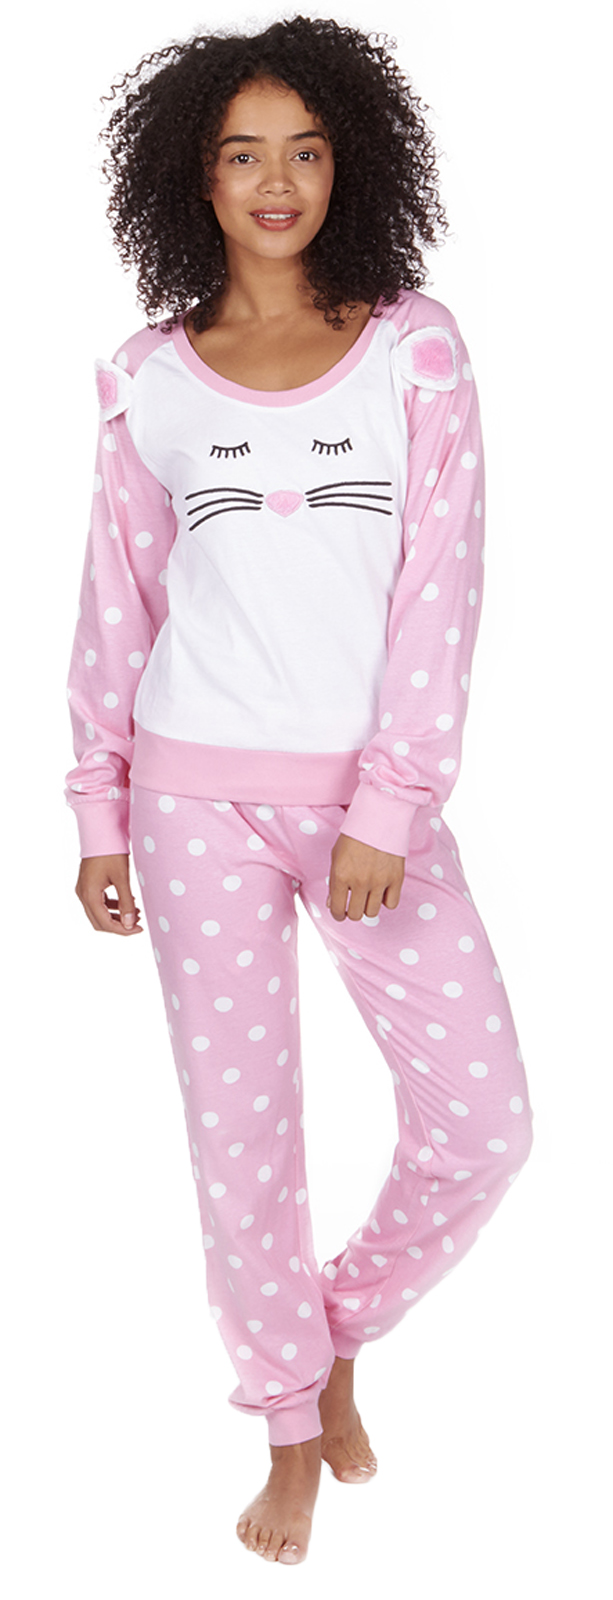 Find great deals on eBay for womens shorts pajama set. Shop with confidence.